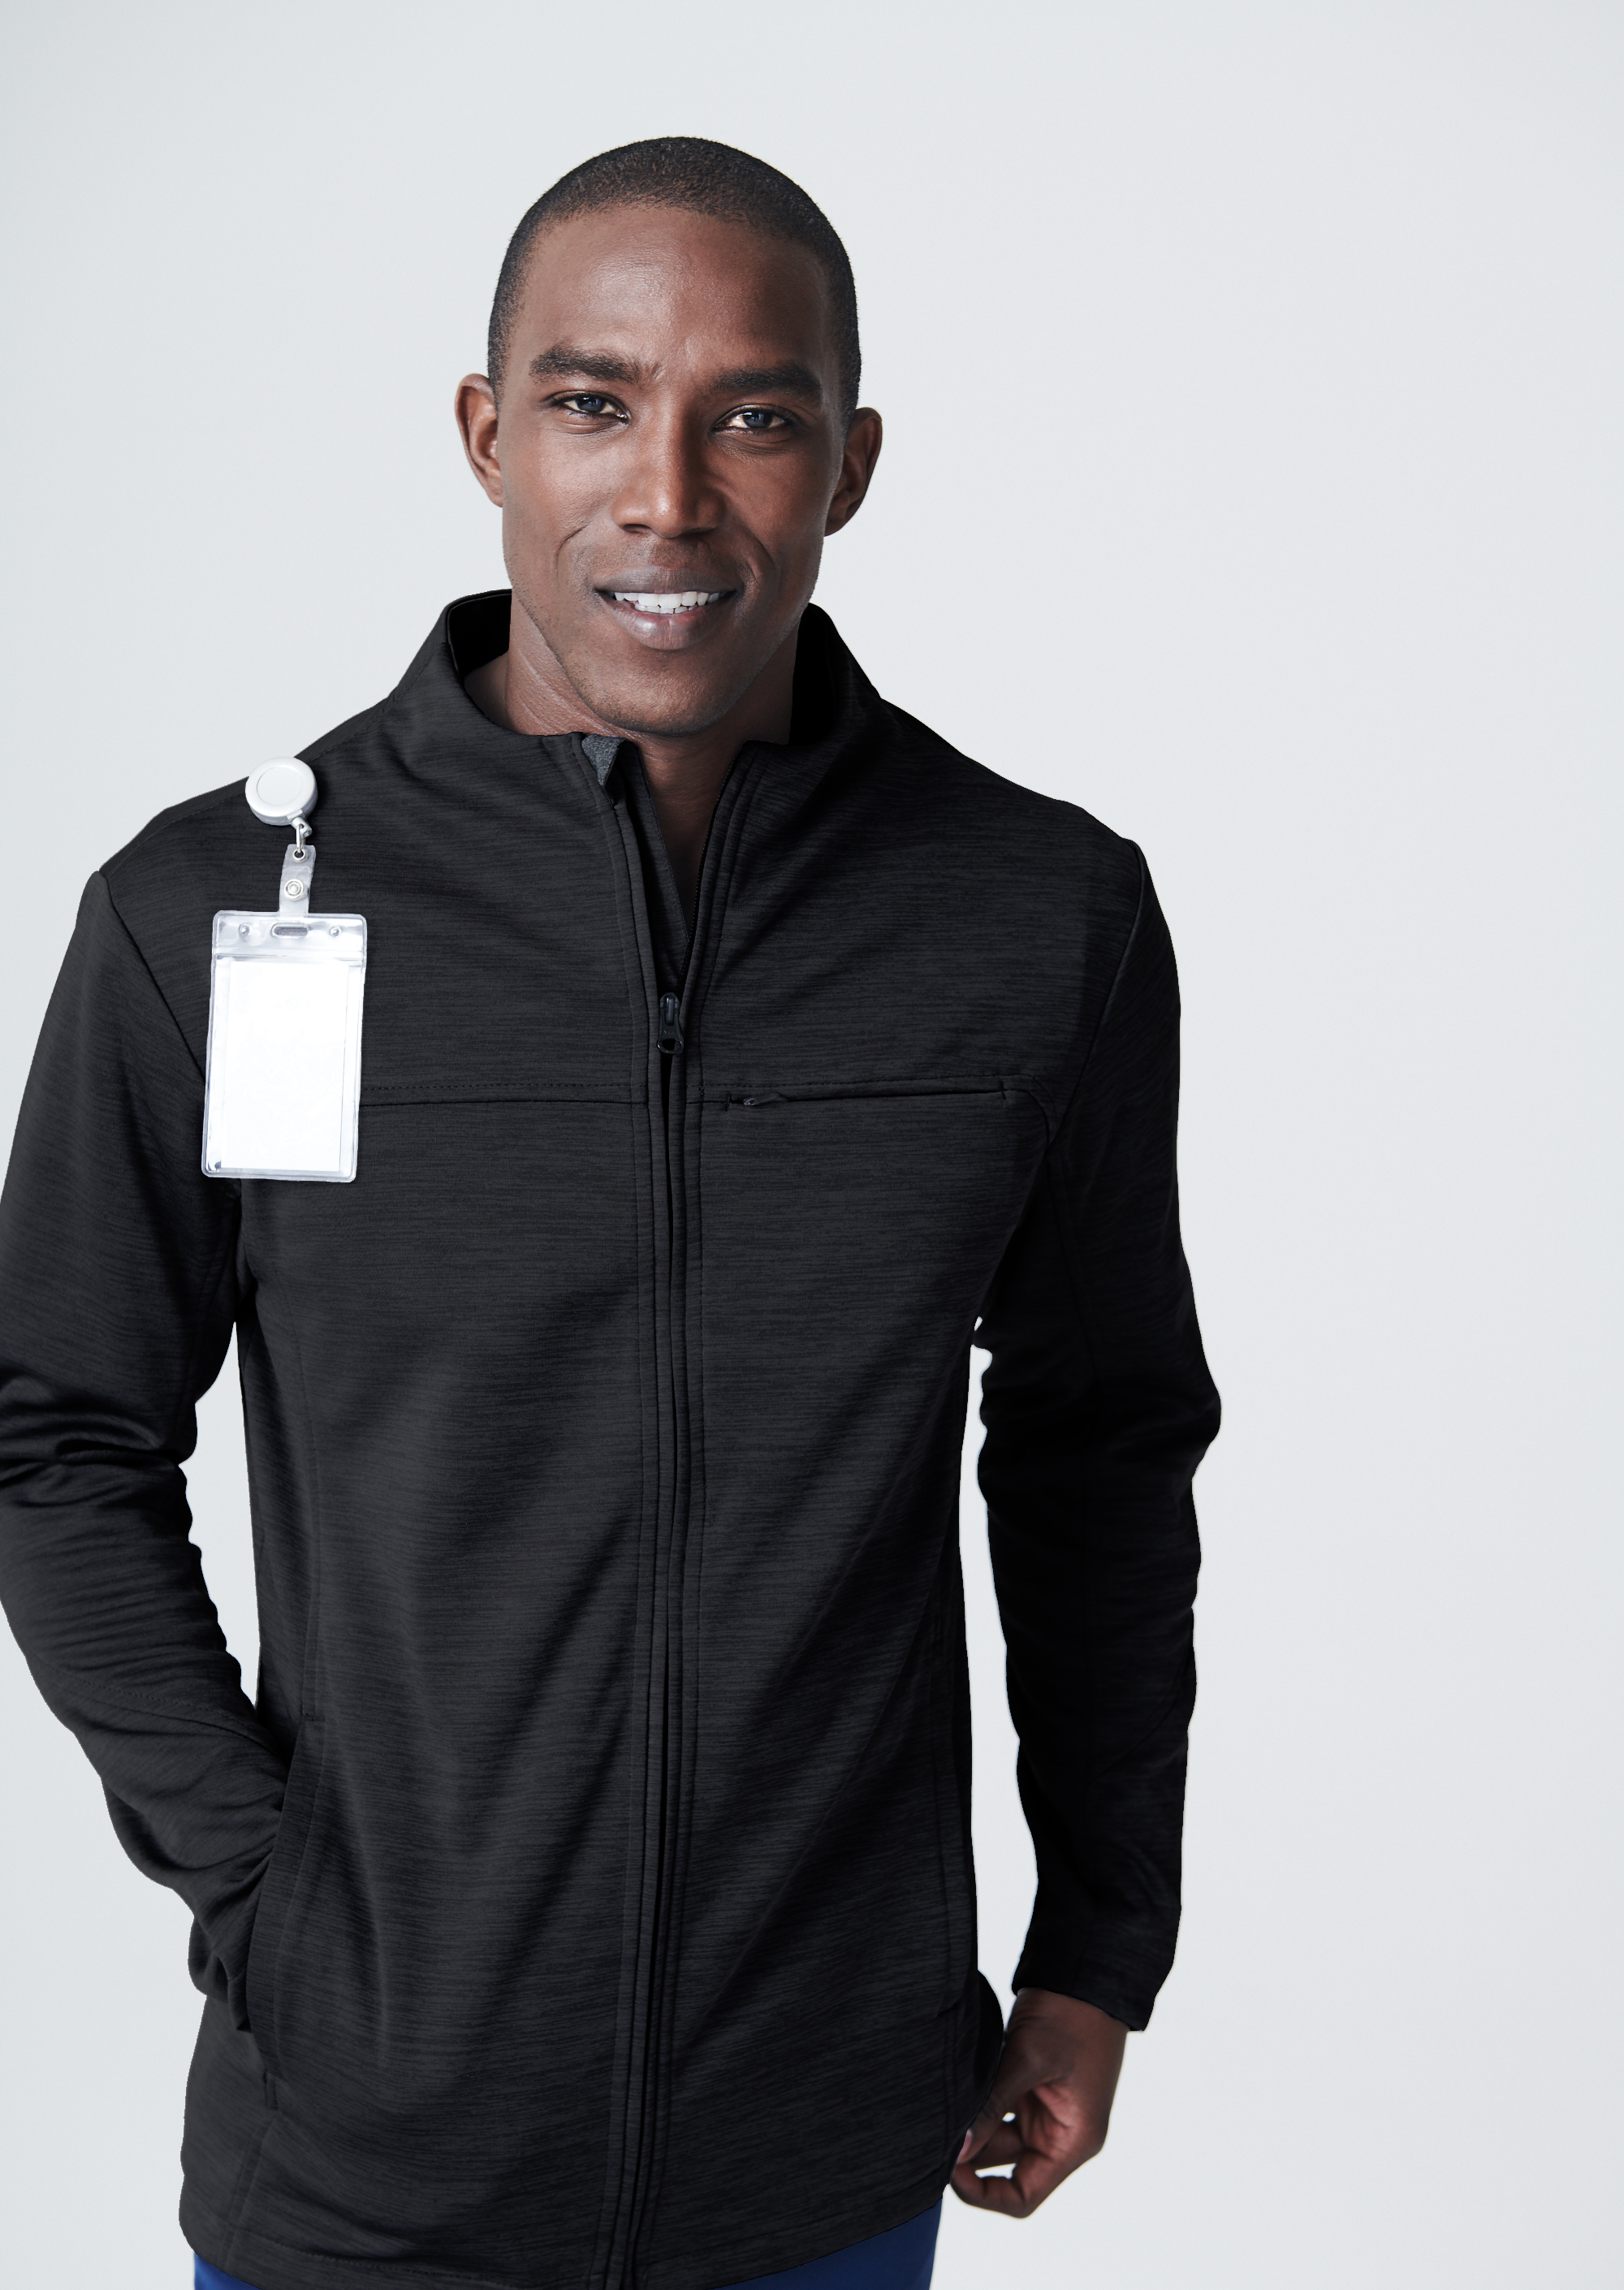 c12b0debd35 The scrub jacket fabric is comfortable and lightweight, but keeps you warm